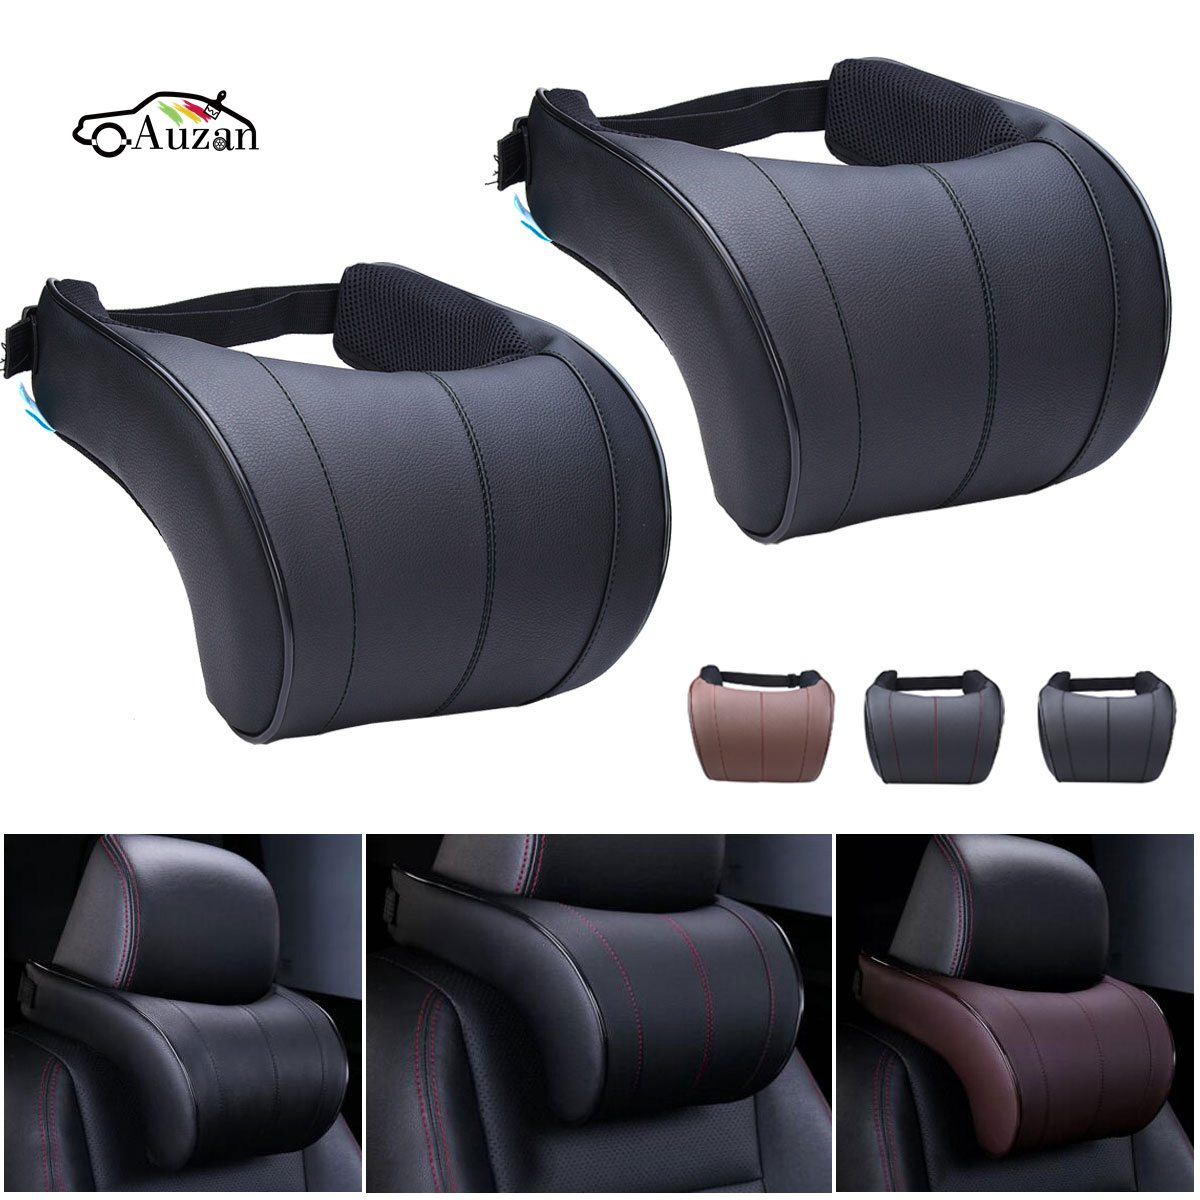 1PCS PU Leather Auto Car Neck Pillow Memory Foam Pillows Neck Rest Seat Headrest Cushion Pad 3 Colors High Quality the space memory cotton car waist cushion summer pillow headrest backrest